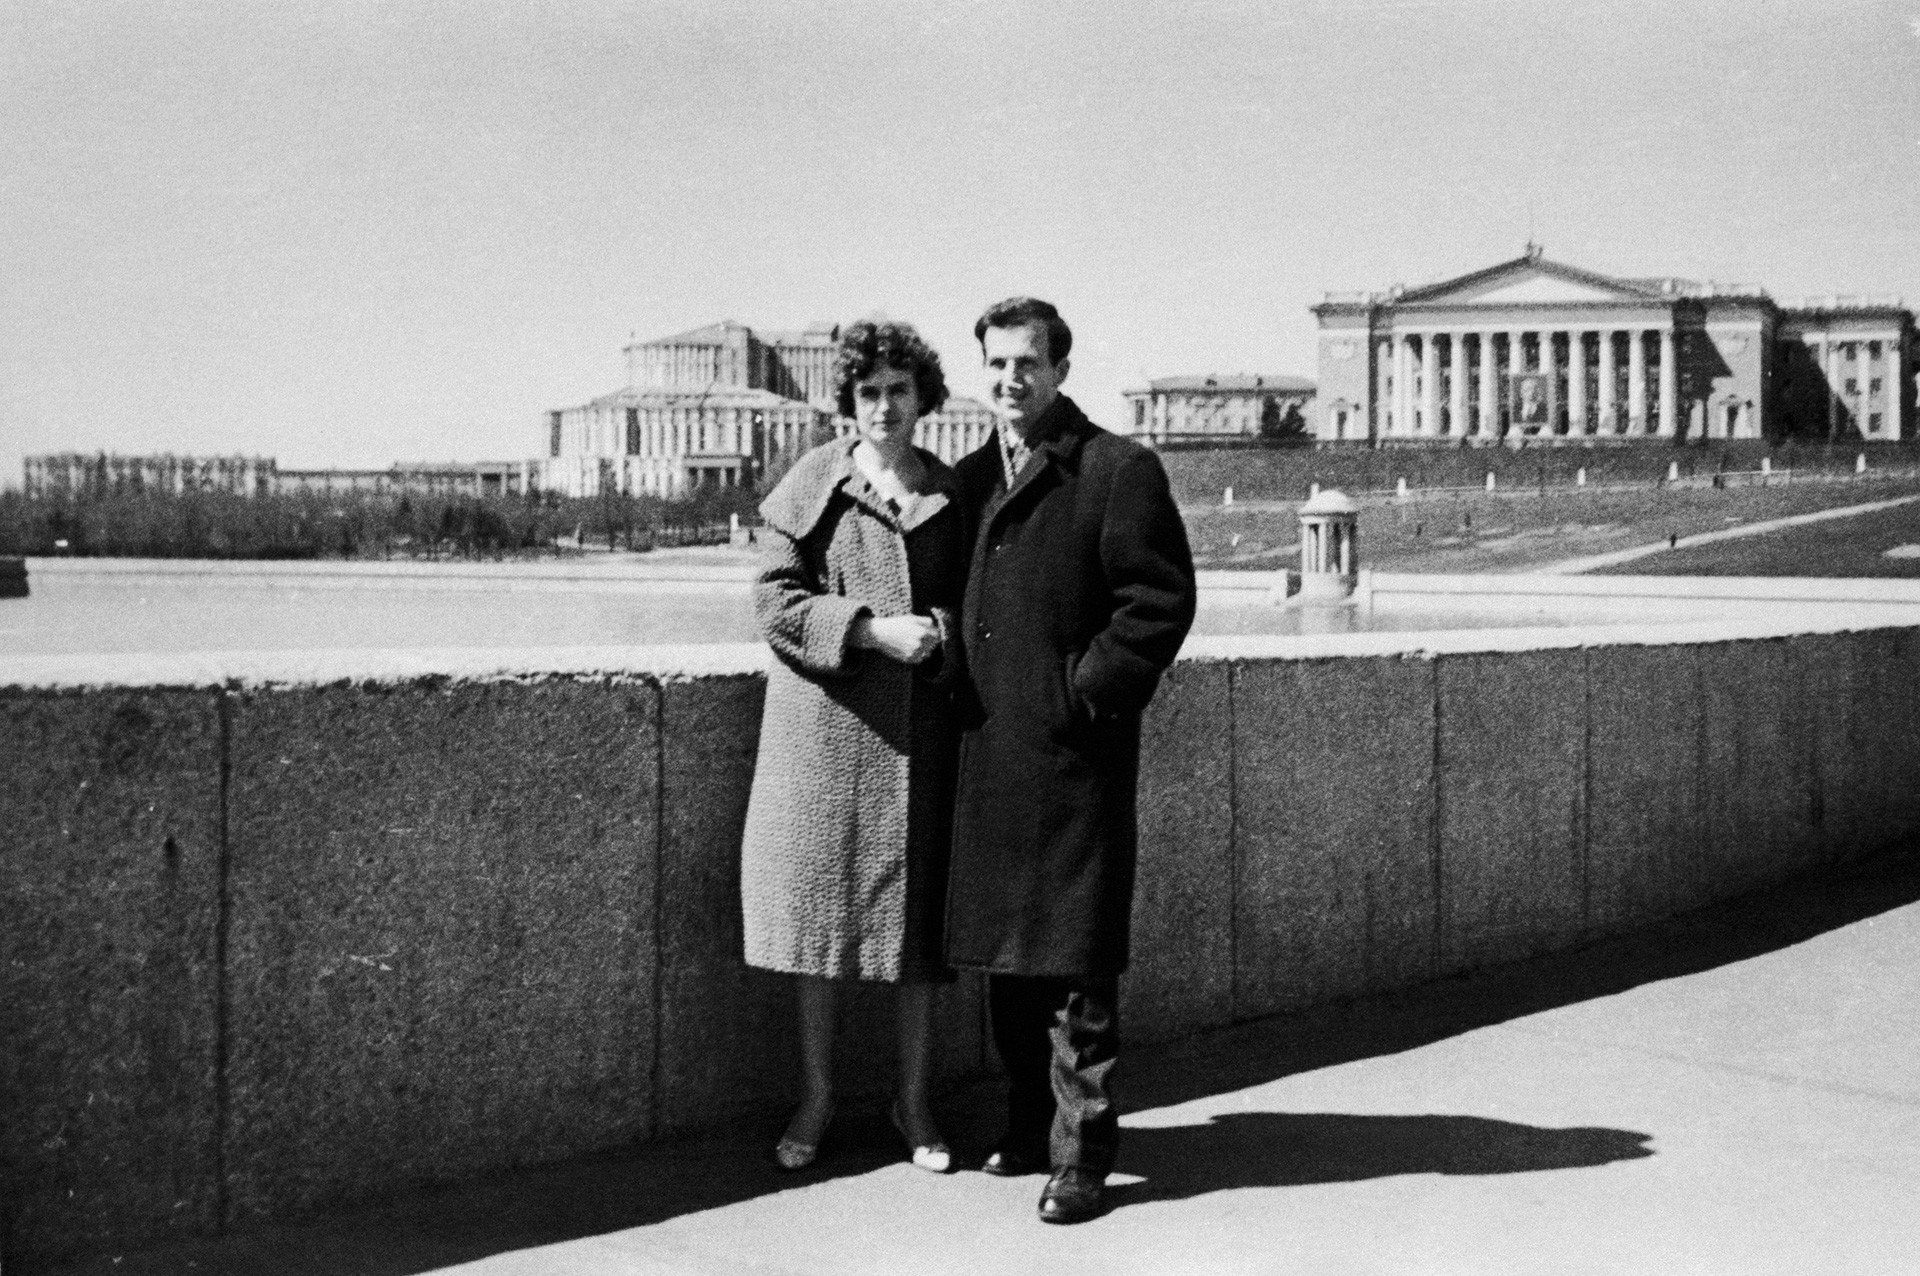 Lee Harvey Oswald and Marina Prusakova (his Soviet-born wife) standing in a park in Minsk, USSR.